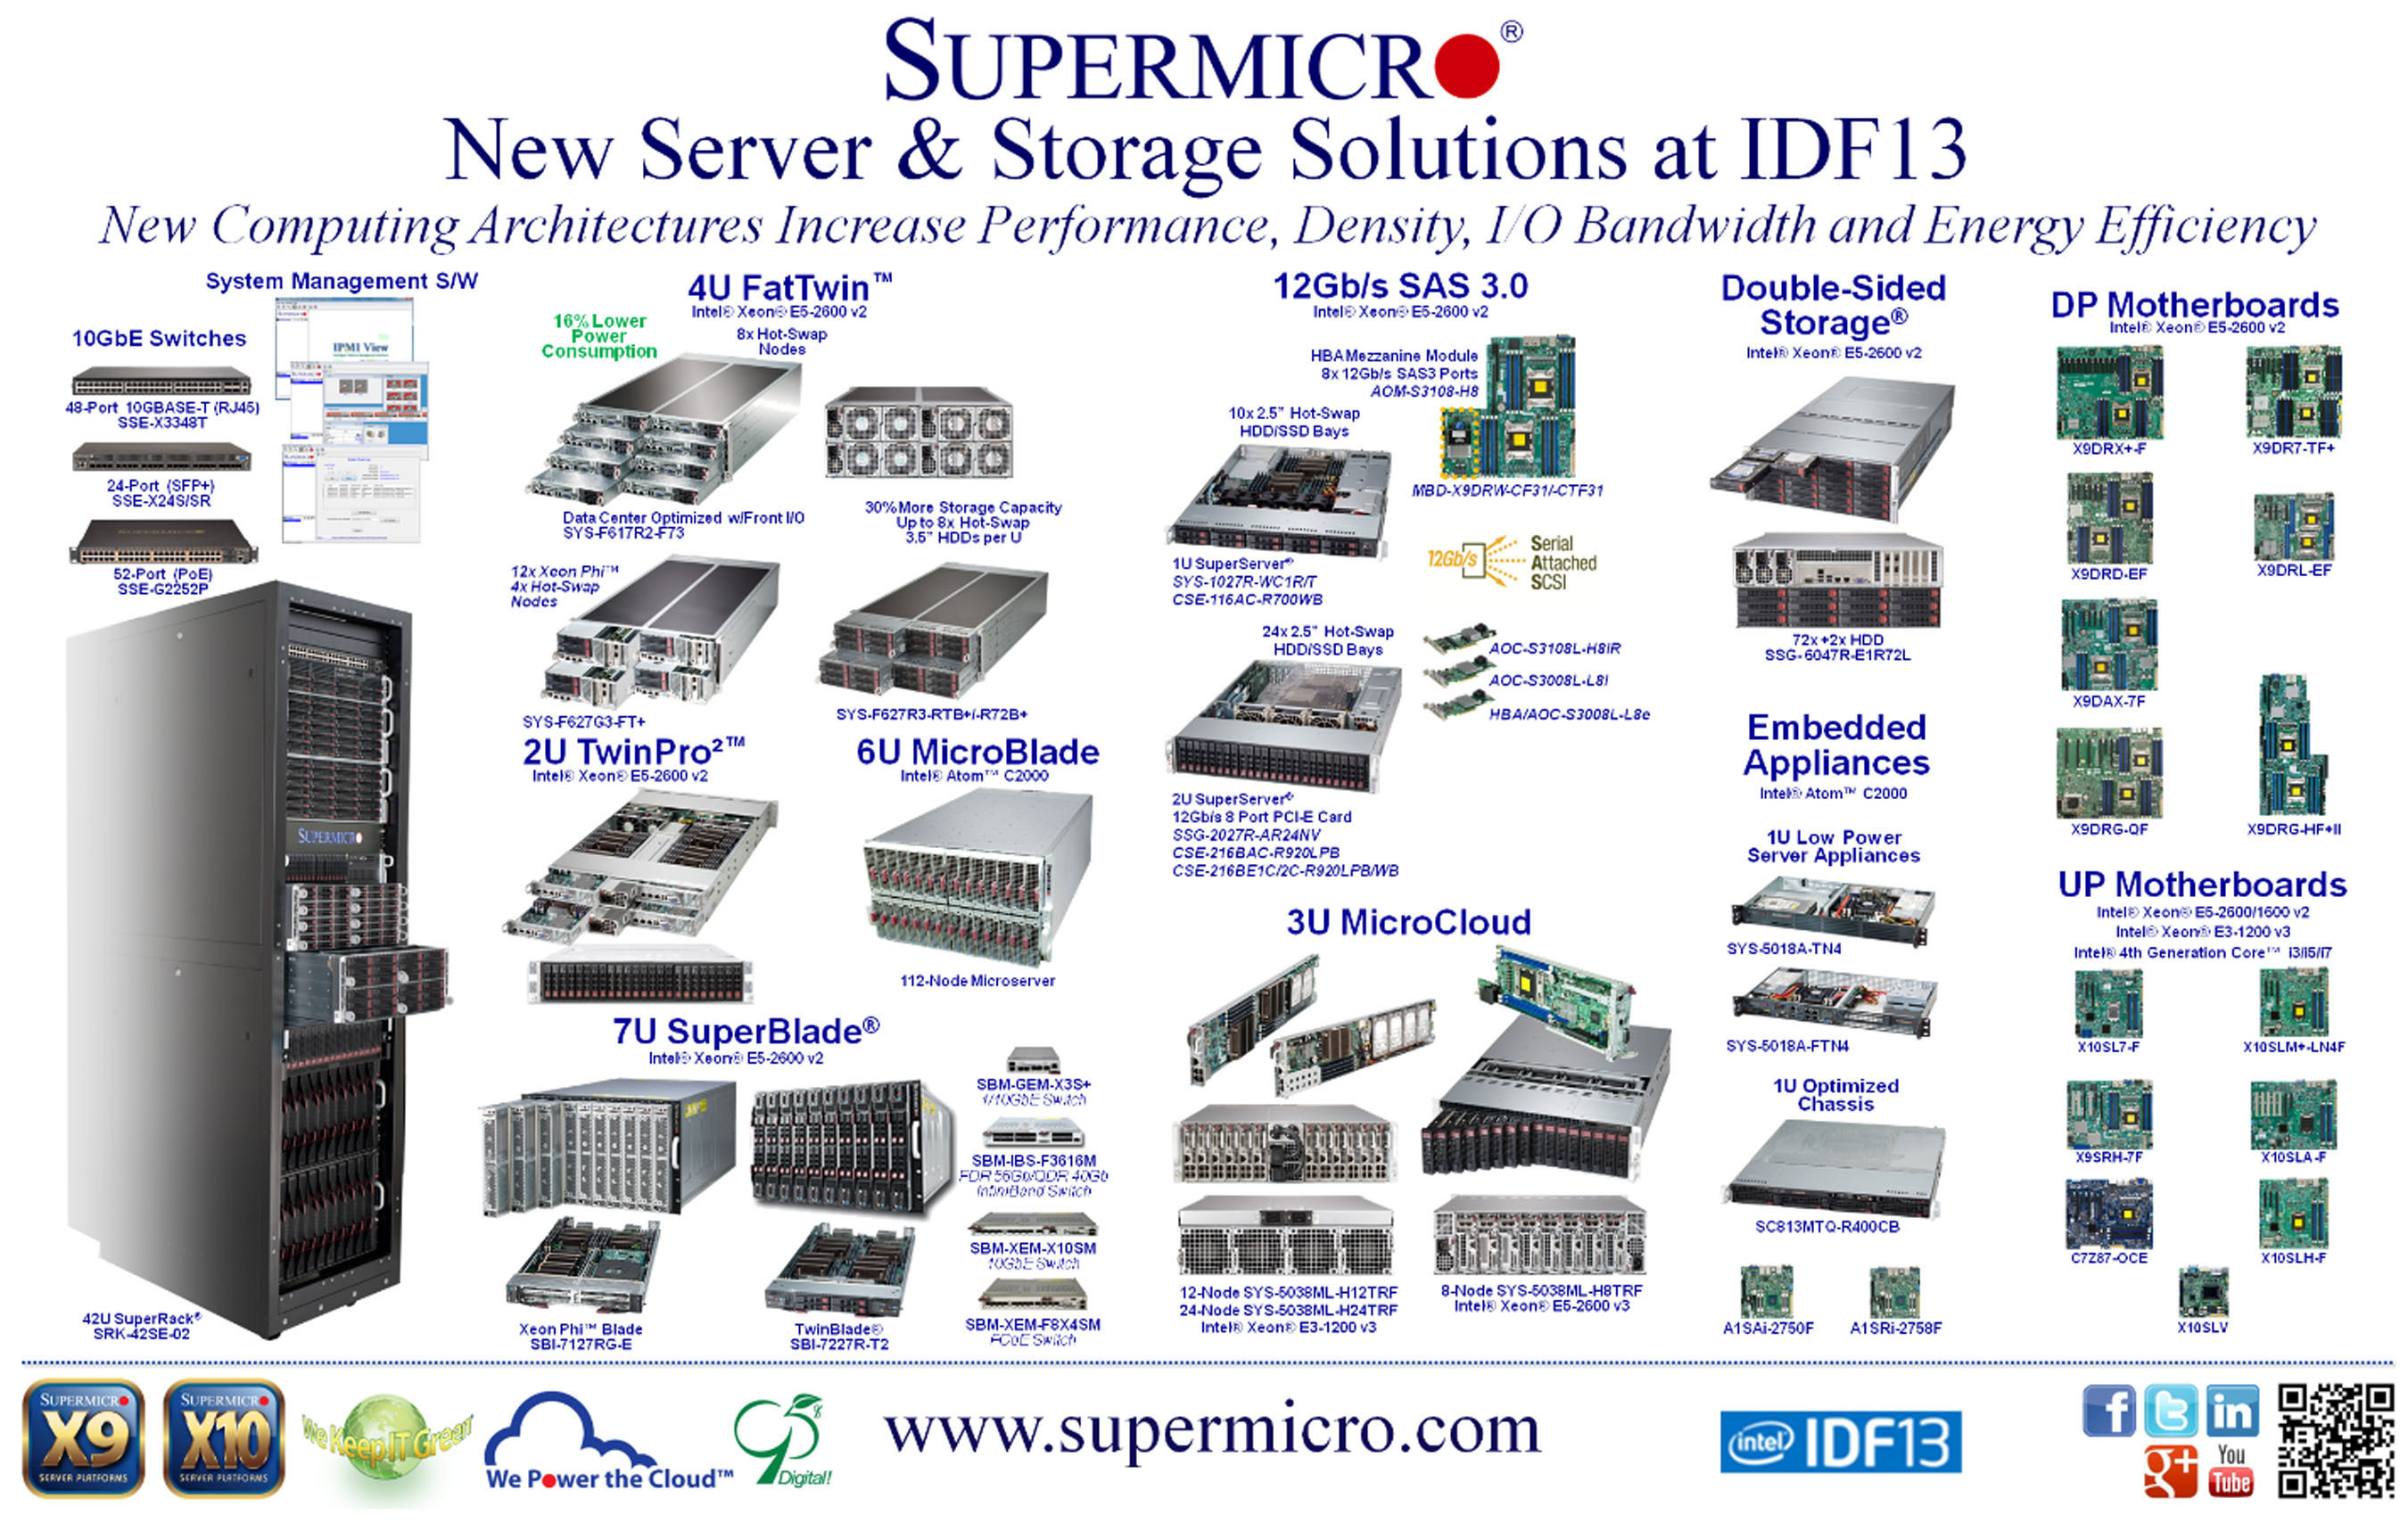 Supermicro(R) Introduces New Server and Storage Solutions at IDF13. (PRNewsFoto/Super Micro Computer, Inc.) ...